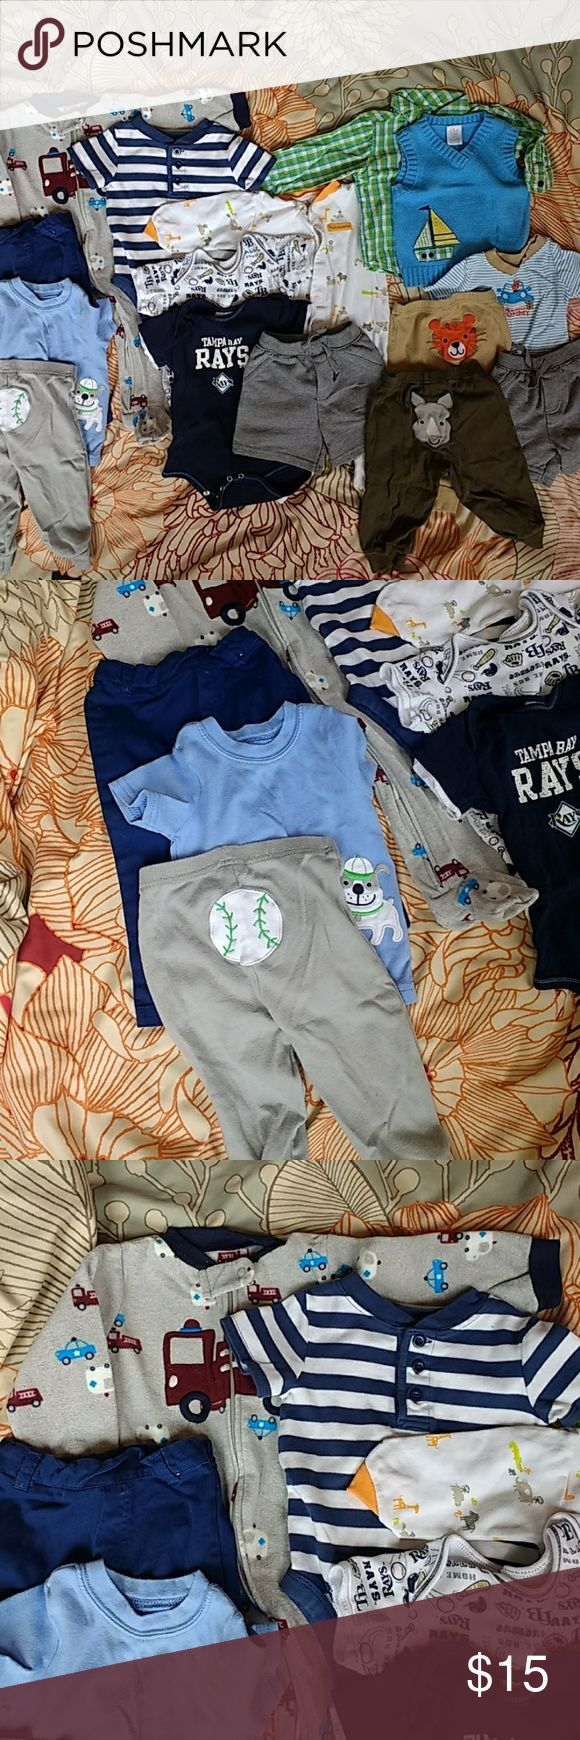 Bundle of 15 🍼👣 Baby Clothes size 6m - 9m 15 assorted items, all size 6m - 9m. Assorted brands ::: child of mine by carters, circo, nursery rhyme, mlb, garanimals ::: includes short sleeve snap bottom one piece, pants, shorts, short sleeve shirt, long sleeve footed snap one piece, fleece footed zip one piece. All garments are pre-loved and some have stains. Please let me know if you have any questions! Carter's One Pieces